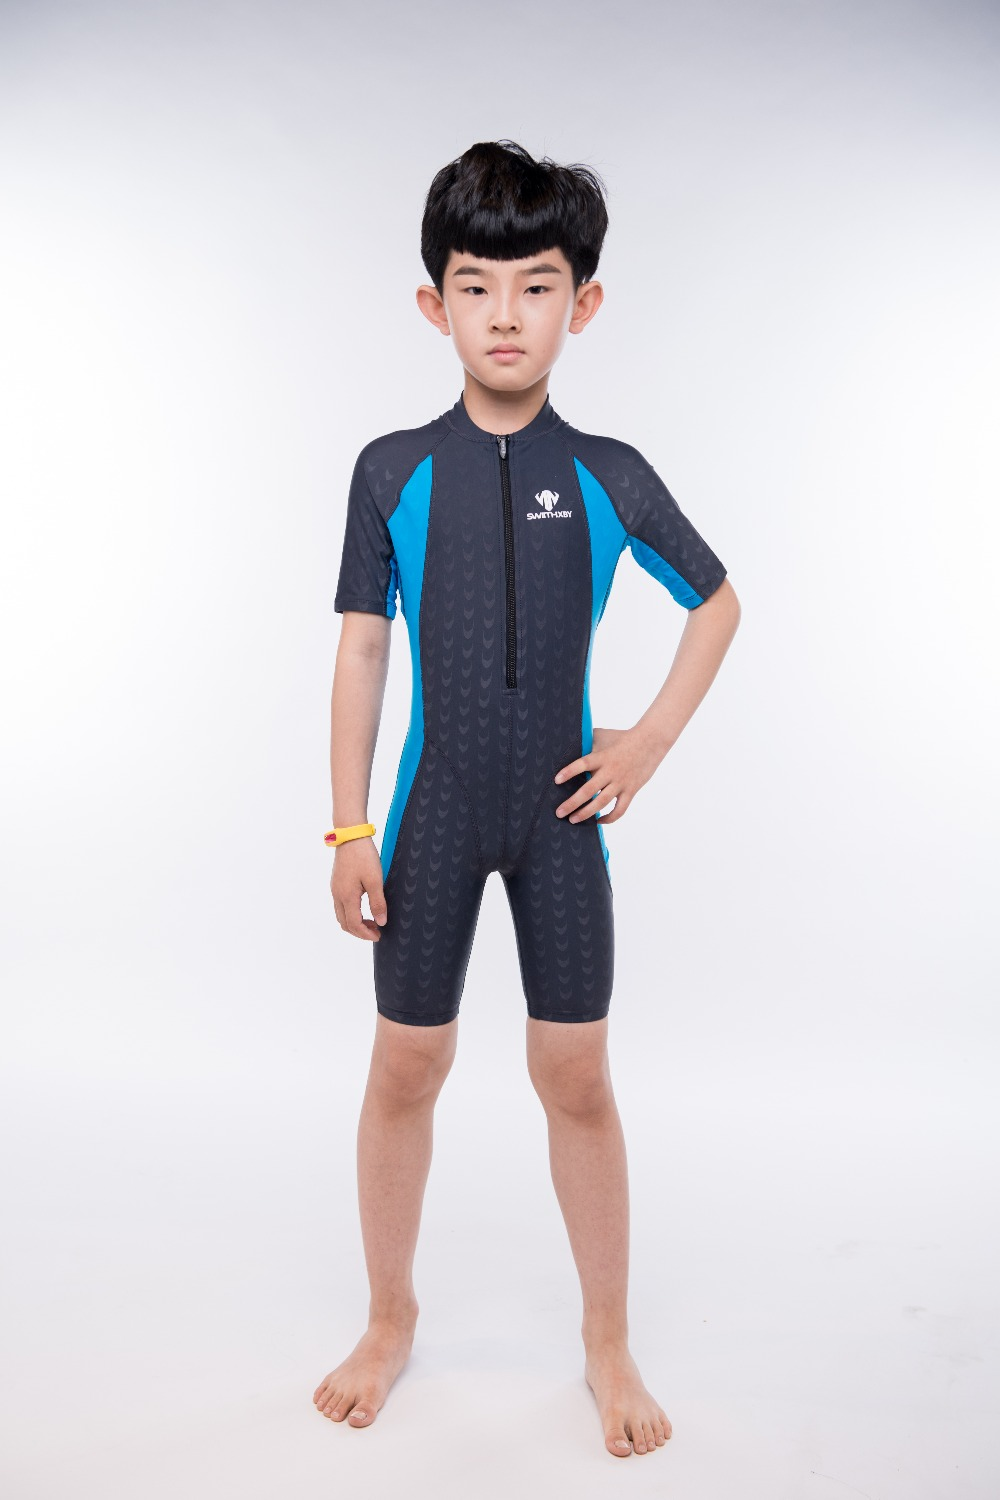 Boys One Piece Nylon Professional Swimwear Sports Pool Training Body Suit Kids Spandex Sport Outdoor Racing Bathing Beach Wear